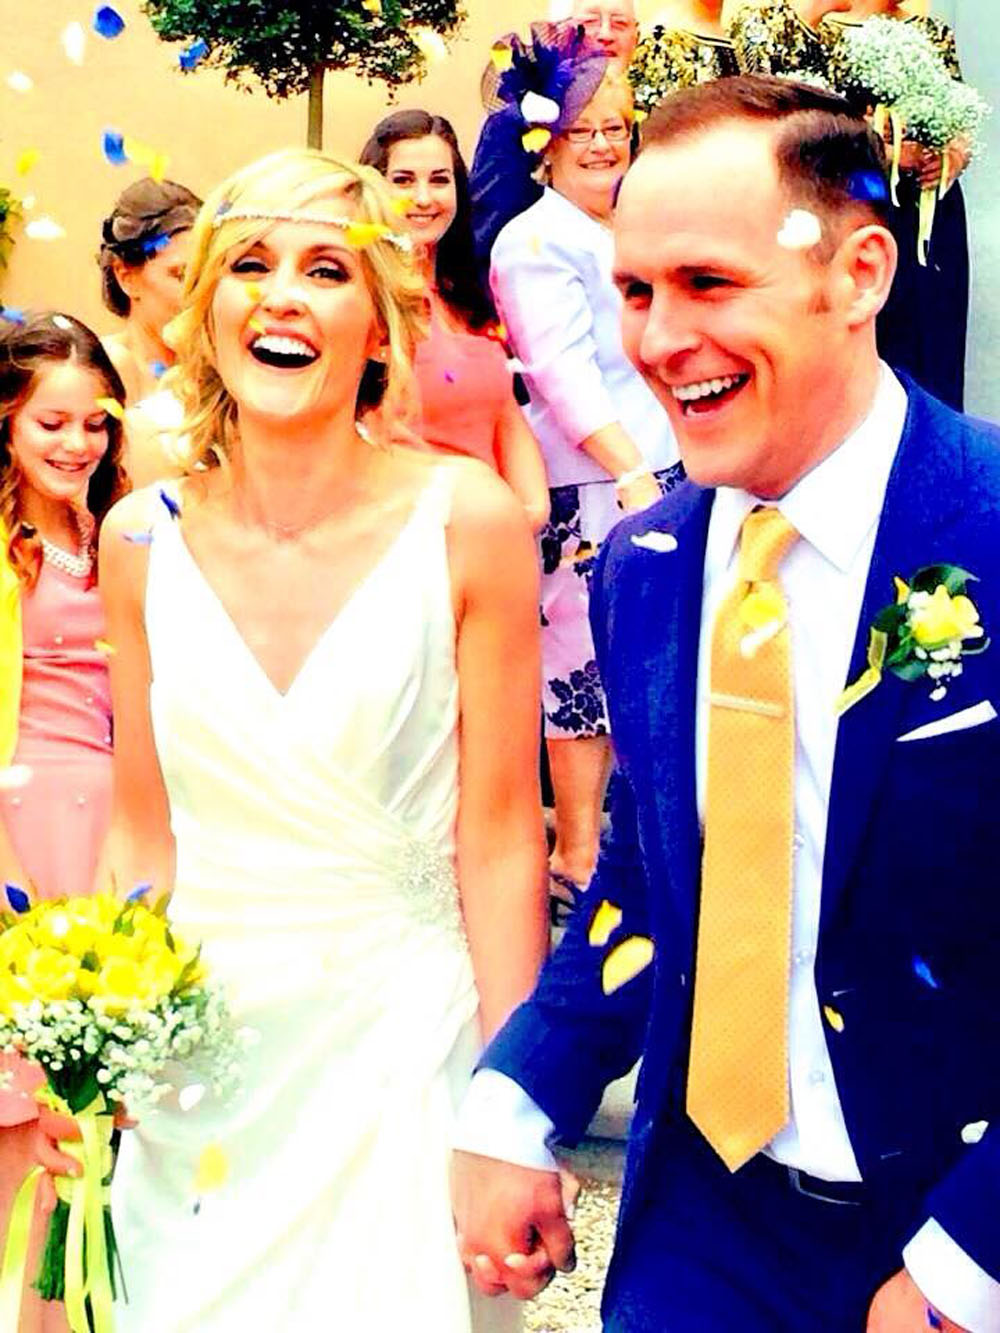 Rose Petals - confetti moment with yellow and blue petals